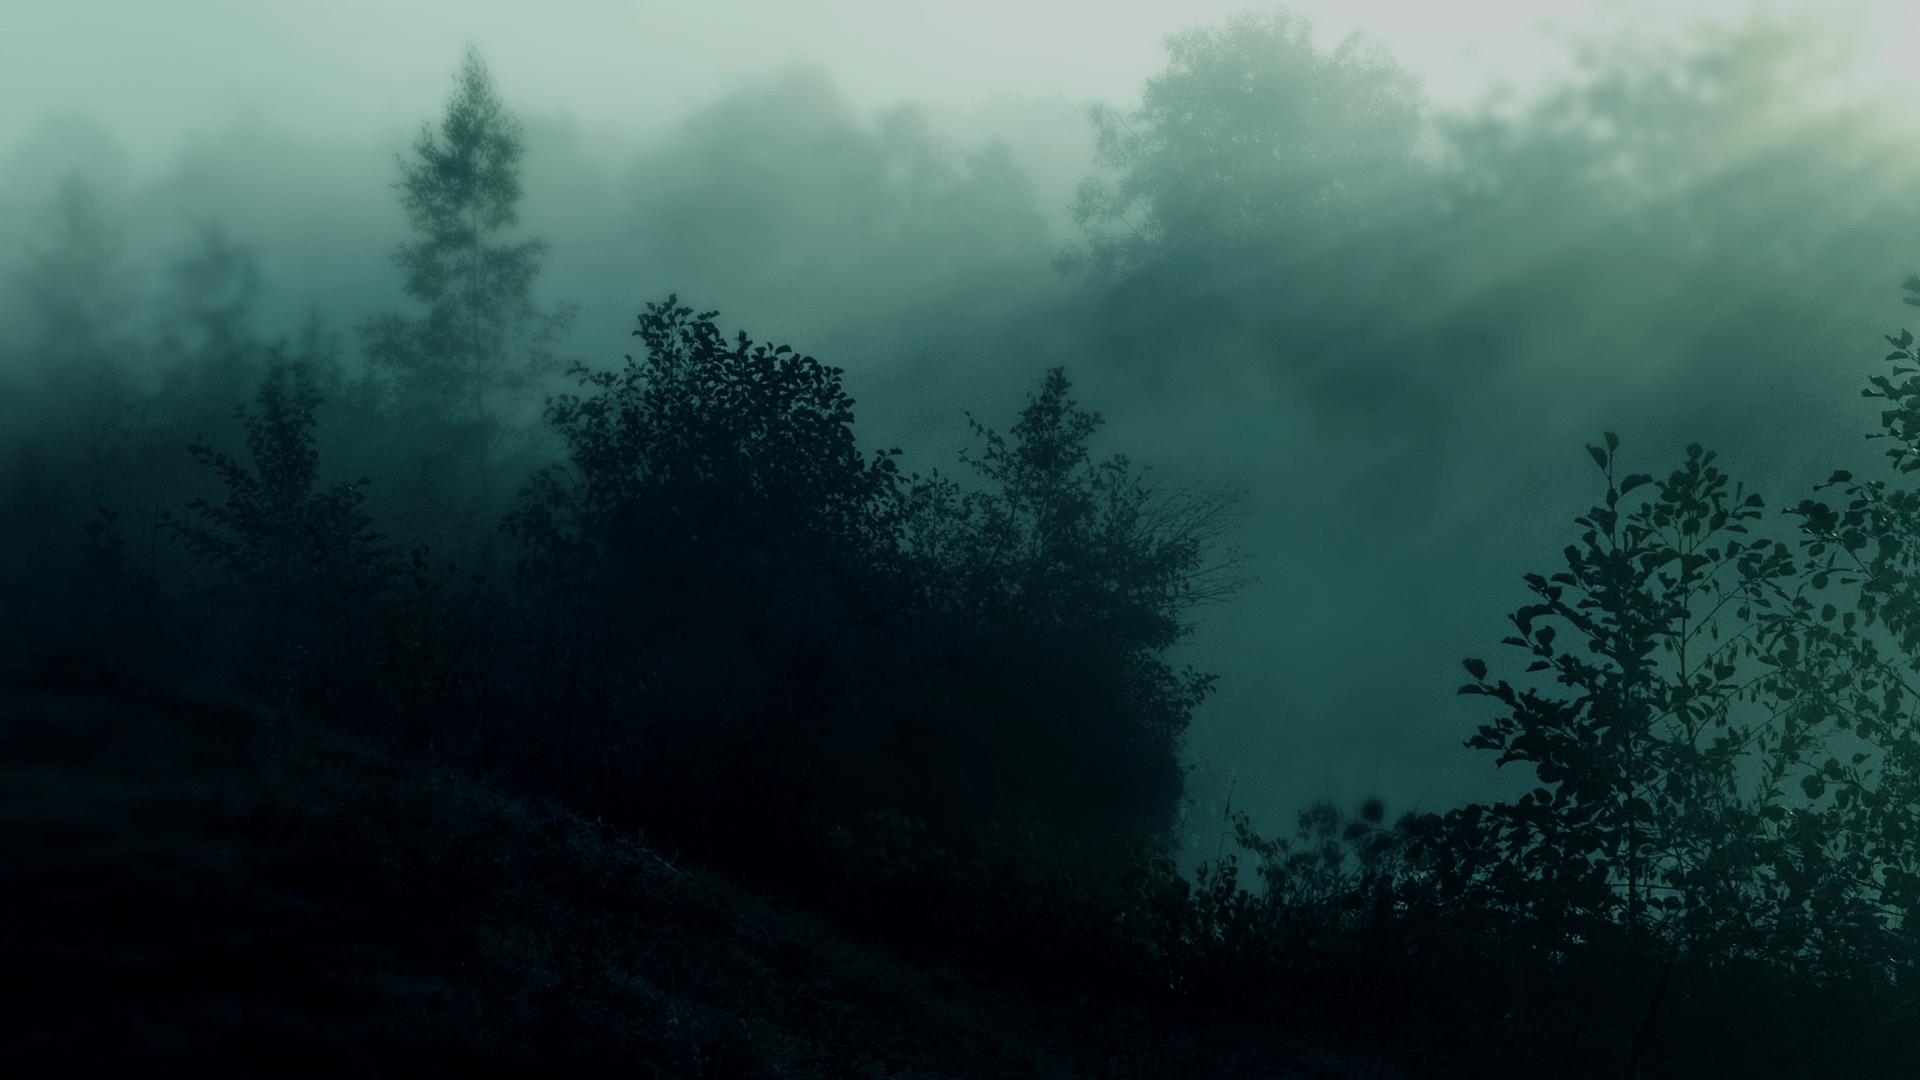 Dark Nature Wallpapers